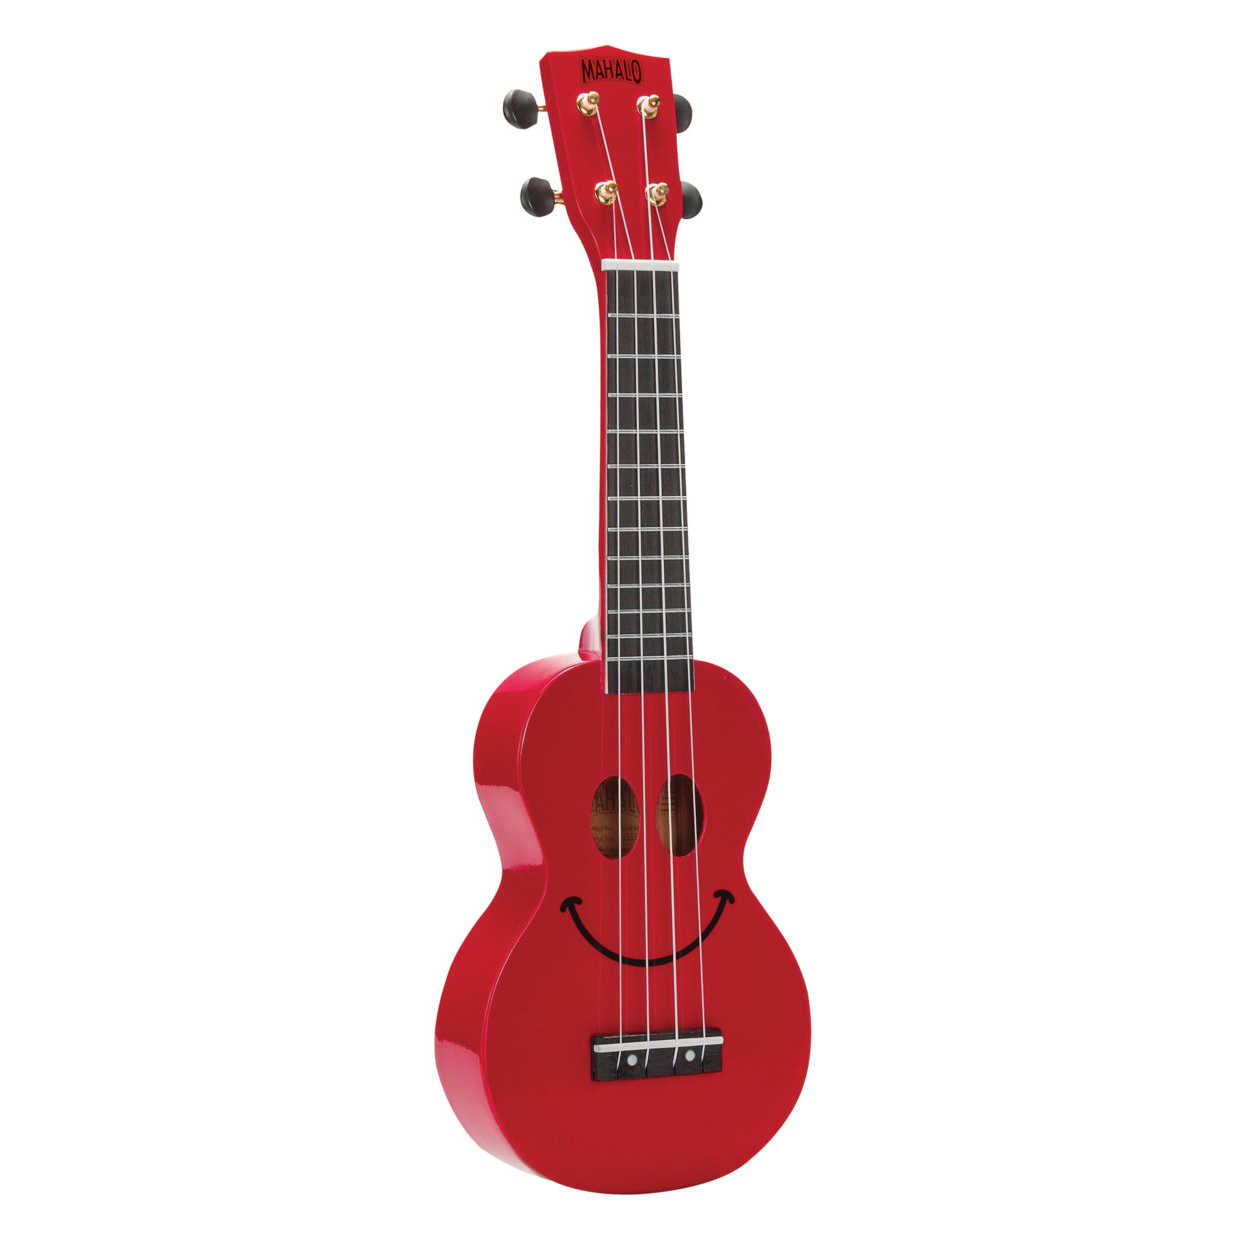 Mahalo U-Smile Series – Soprano Ukulele - Red